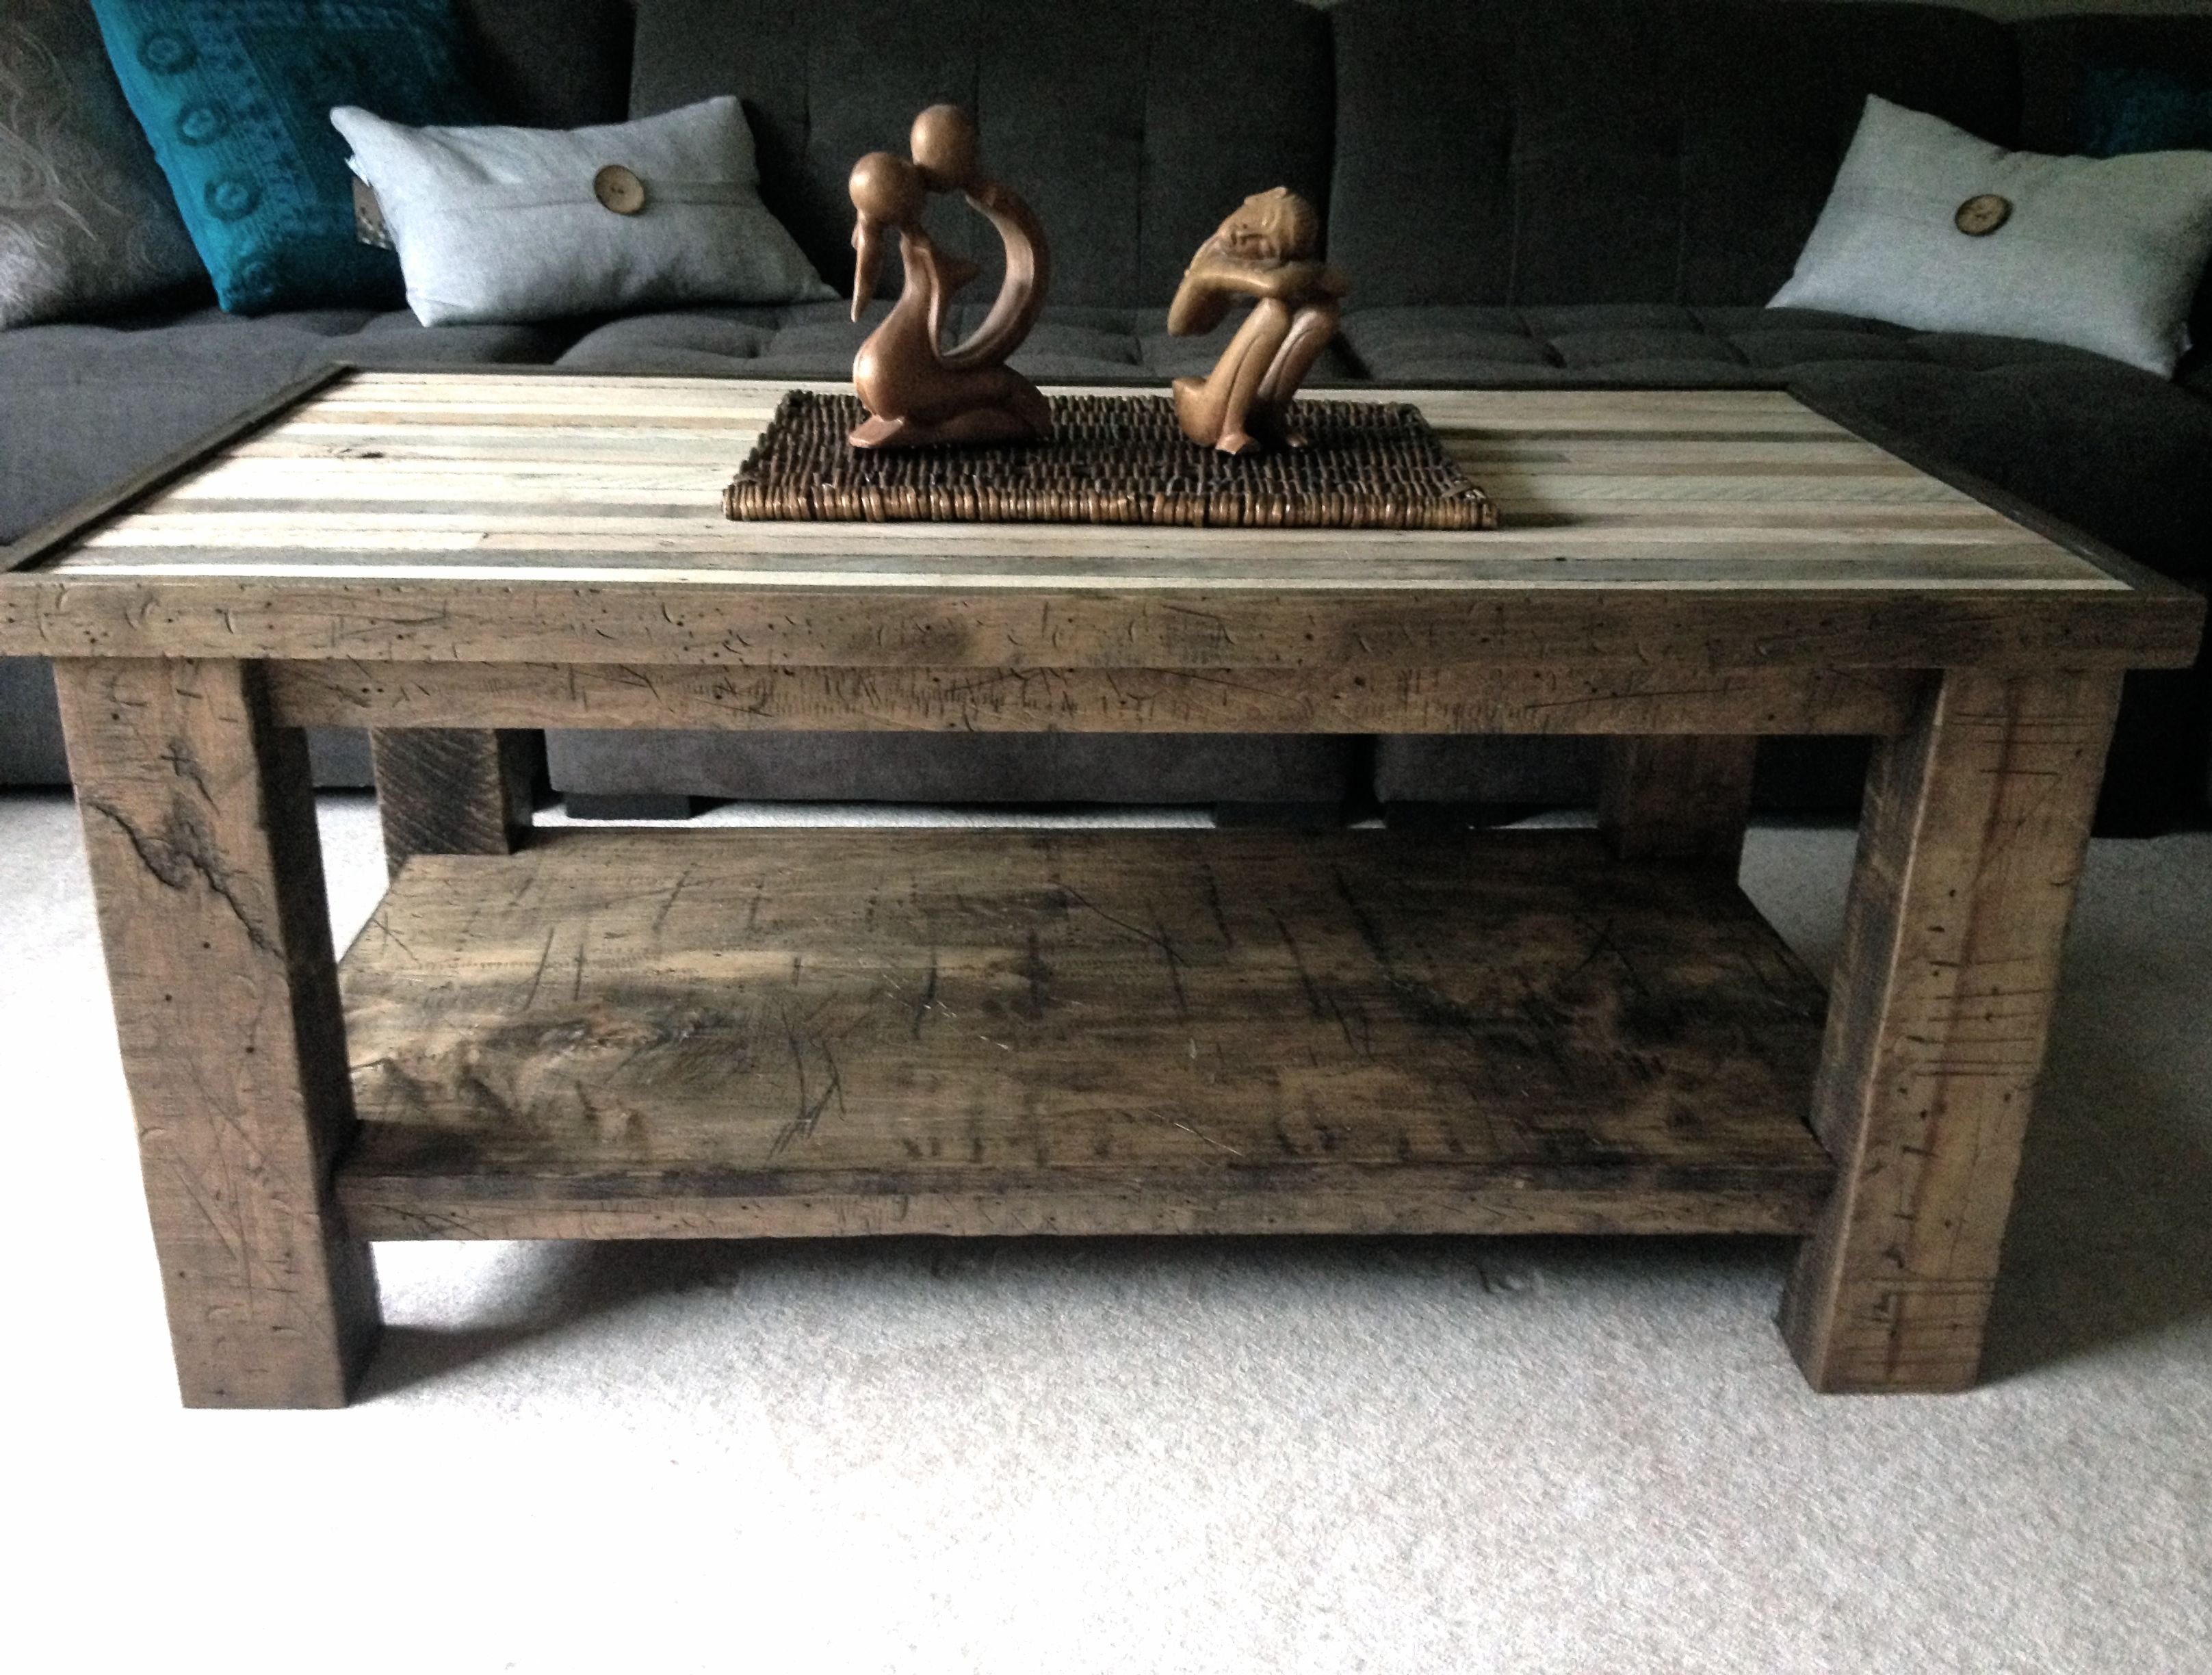 Solid Maple #CoffeeTable with #Reclaimed Lath top. #Handcrafted by CZWoodworking.com